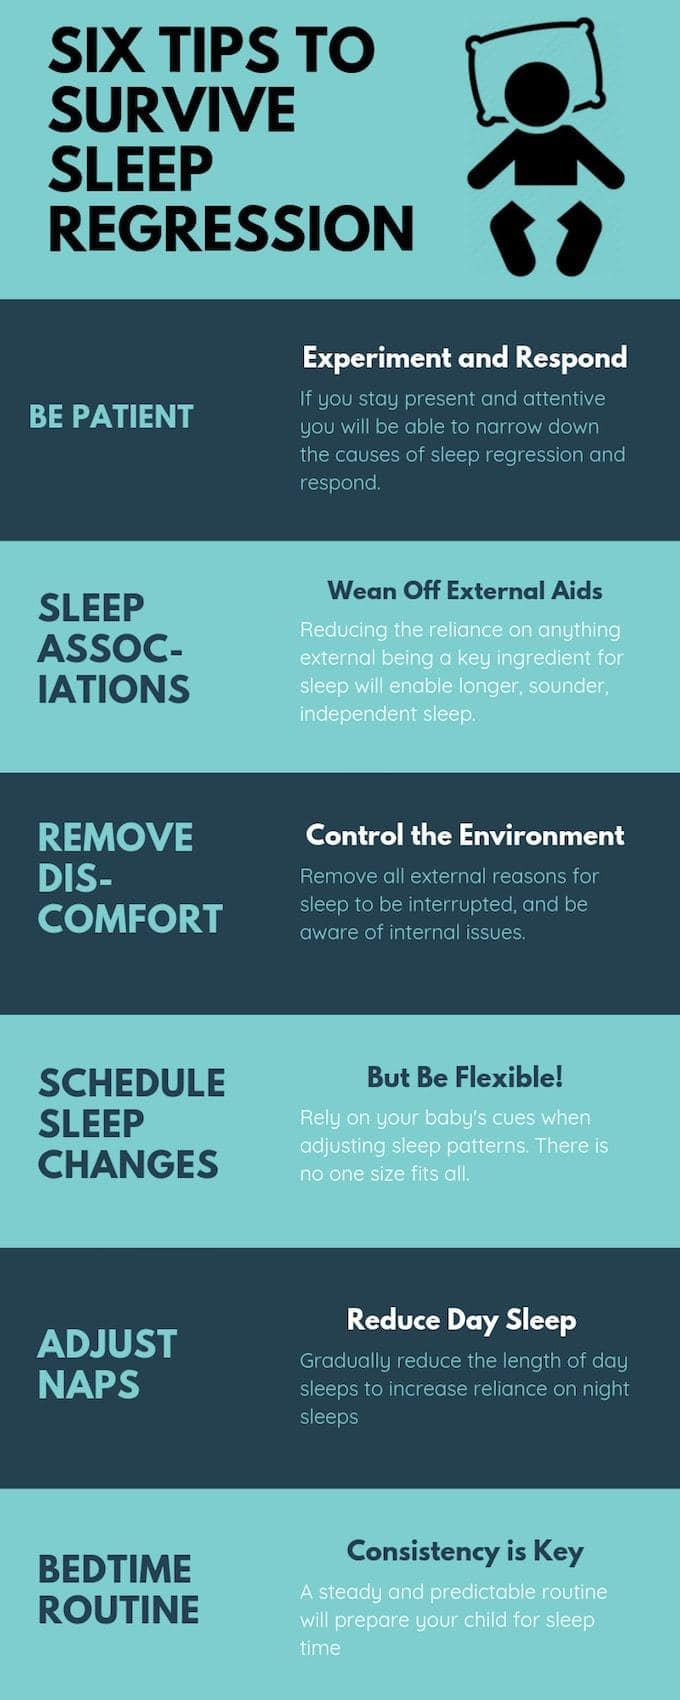 Tips to Survive Sleep Regression